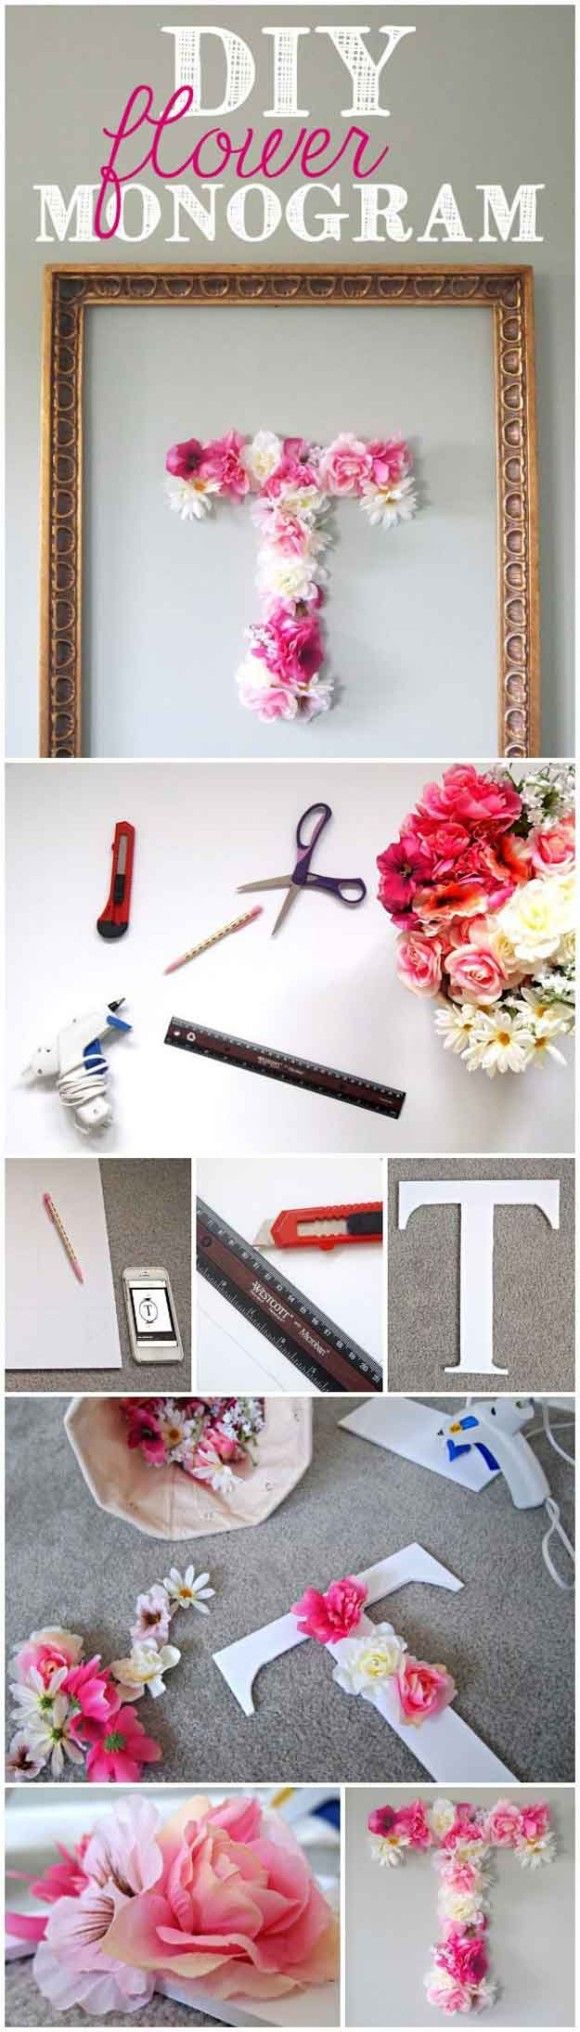 Diy Bedroom Decor Projects best 25+ teen room decor ideas on pinterest | diy bedroom